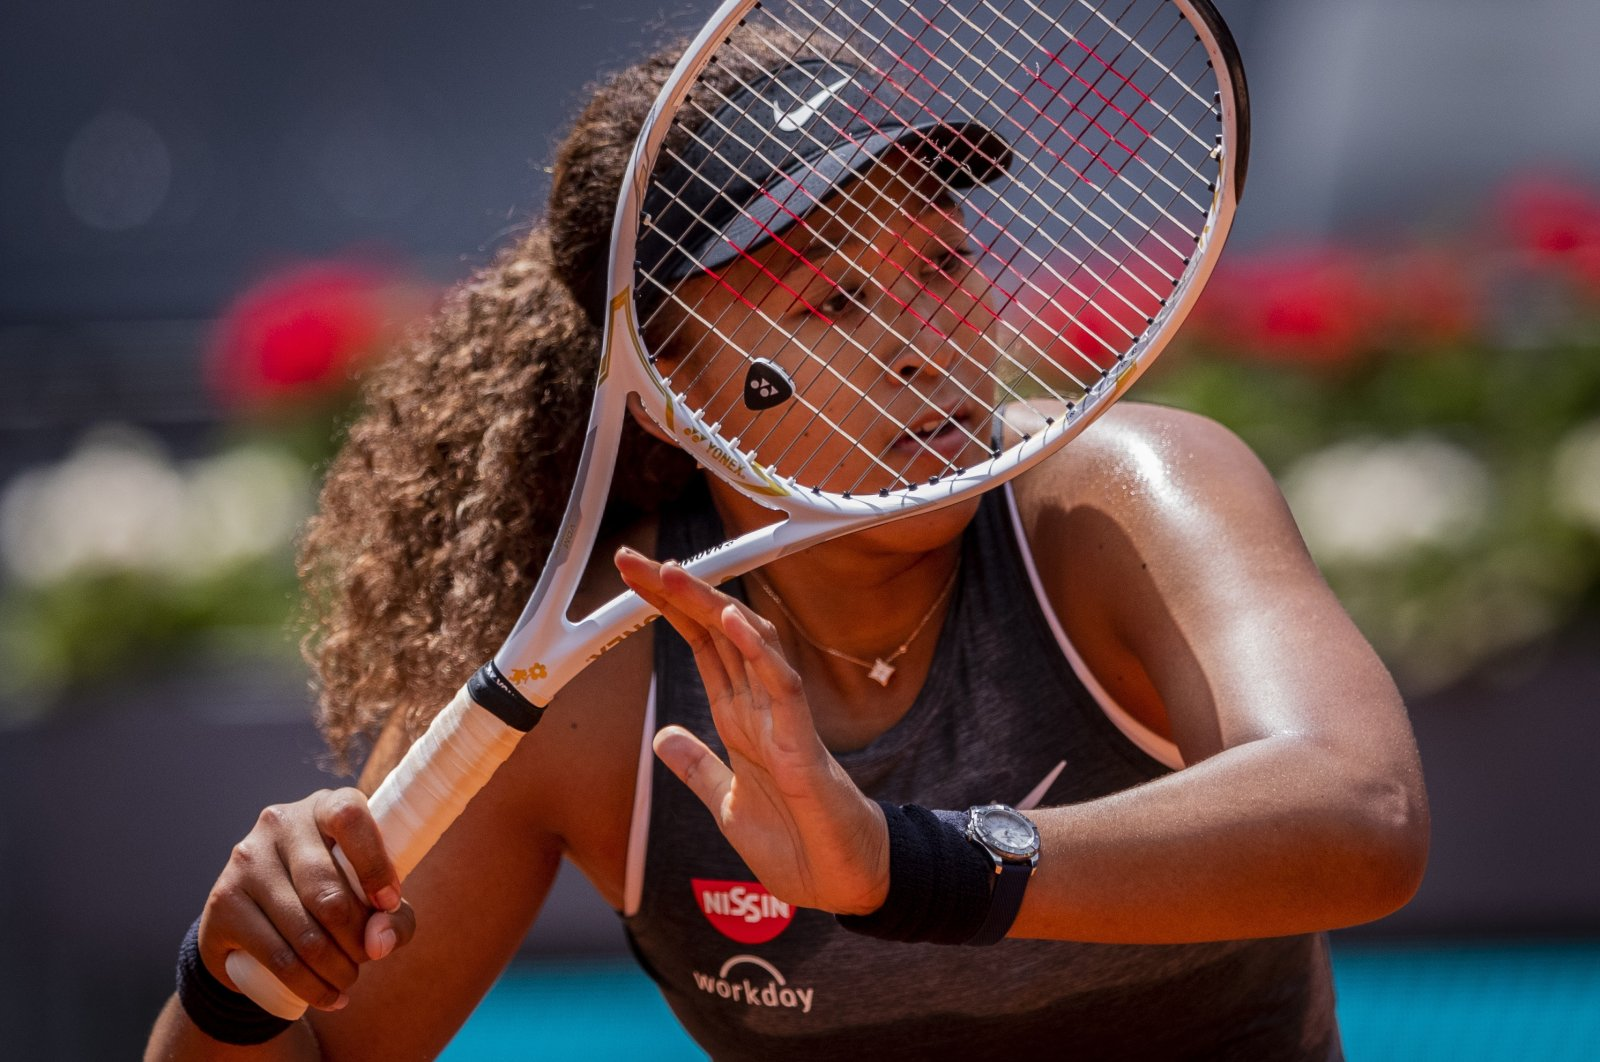 Japan's Naomi Osaka returns the ball to Japan's Misaki Doi during their match at the Madrid Open tennis tournament in Madrid, Spain, April 30, 2021. (AP Photo)